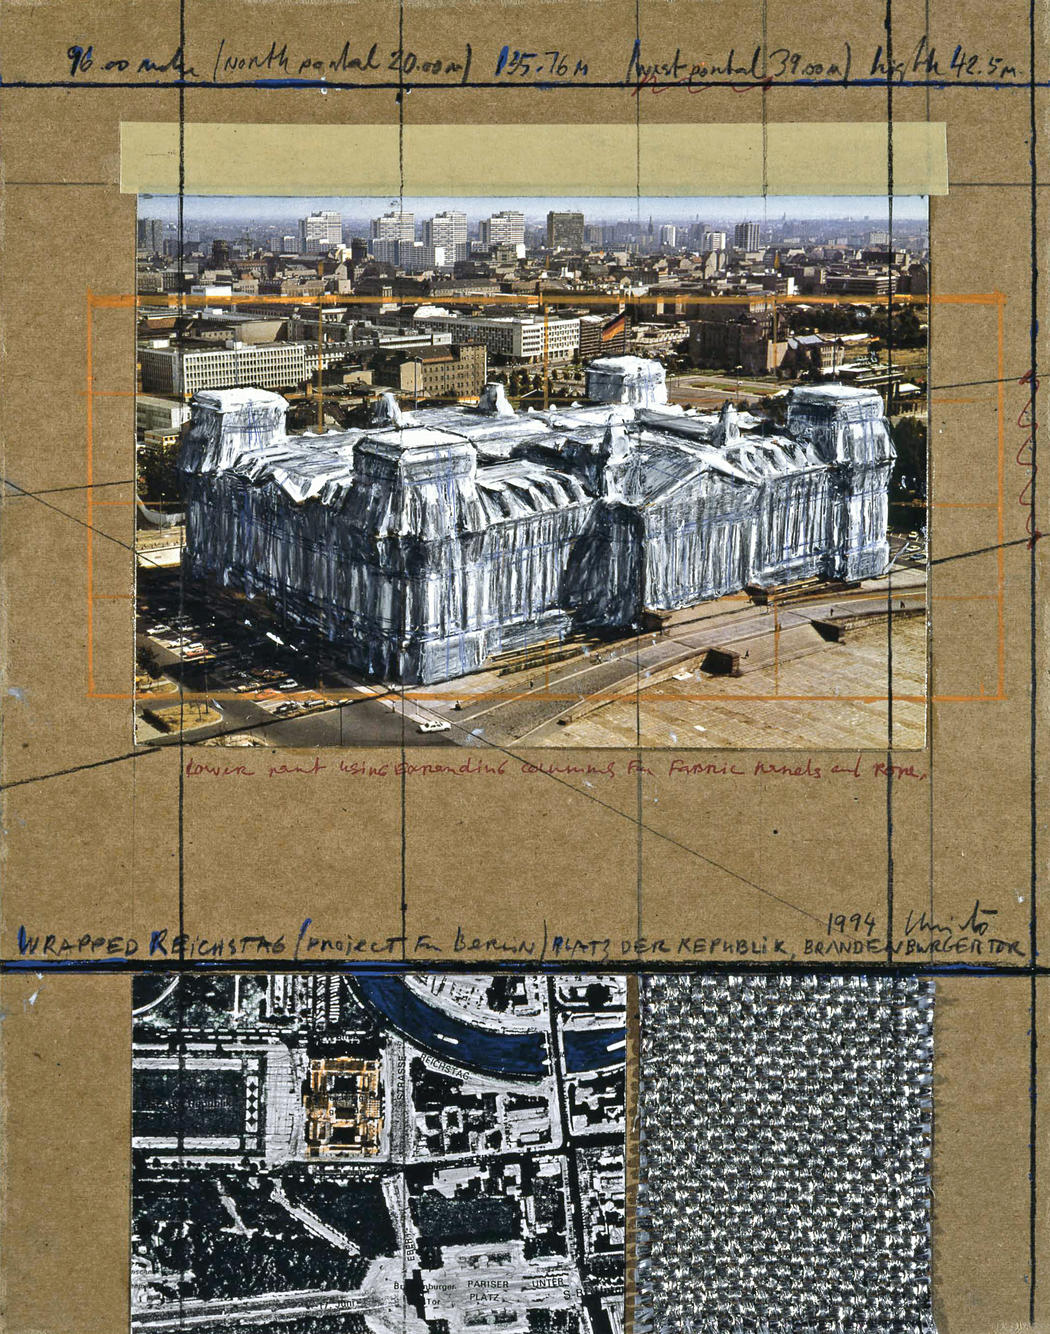 WrappedReichstag1971-95_Christo